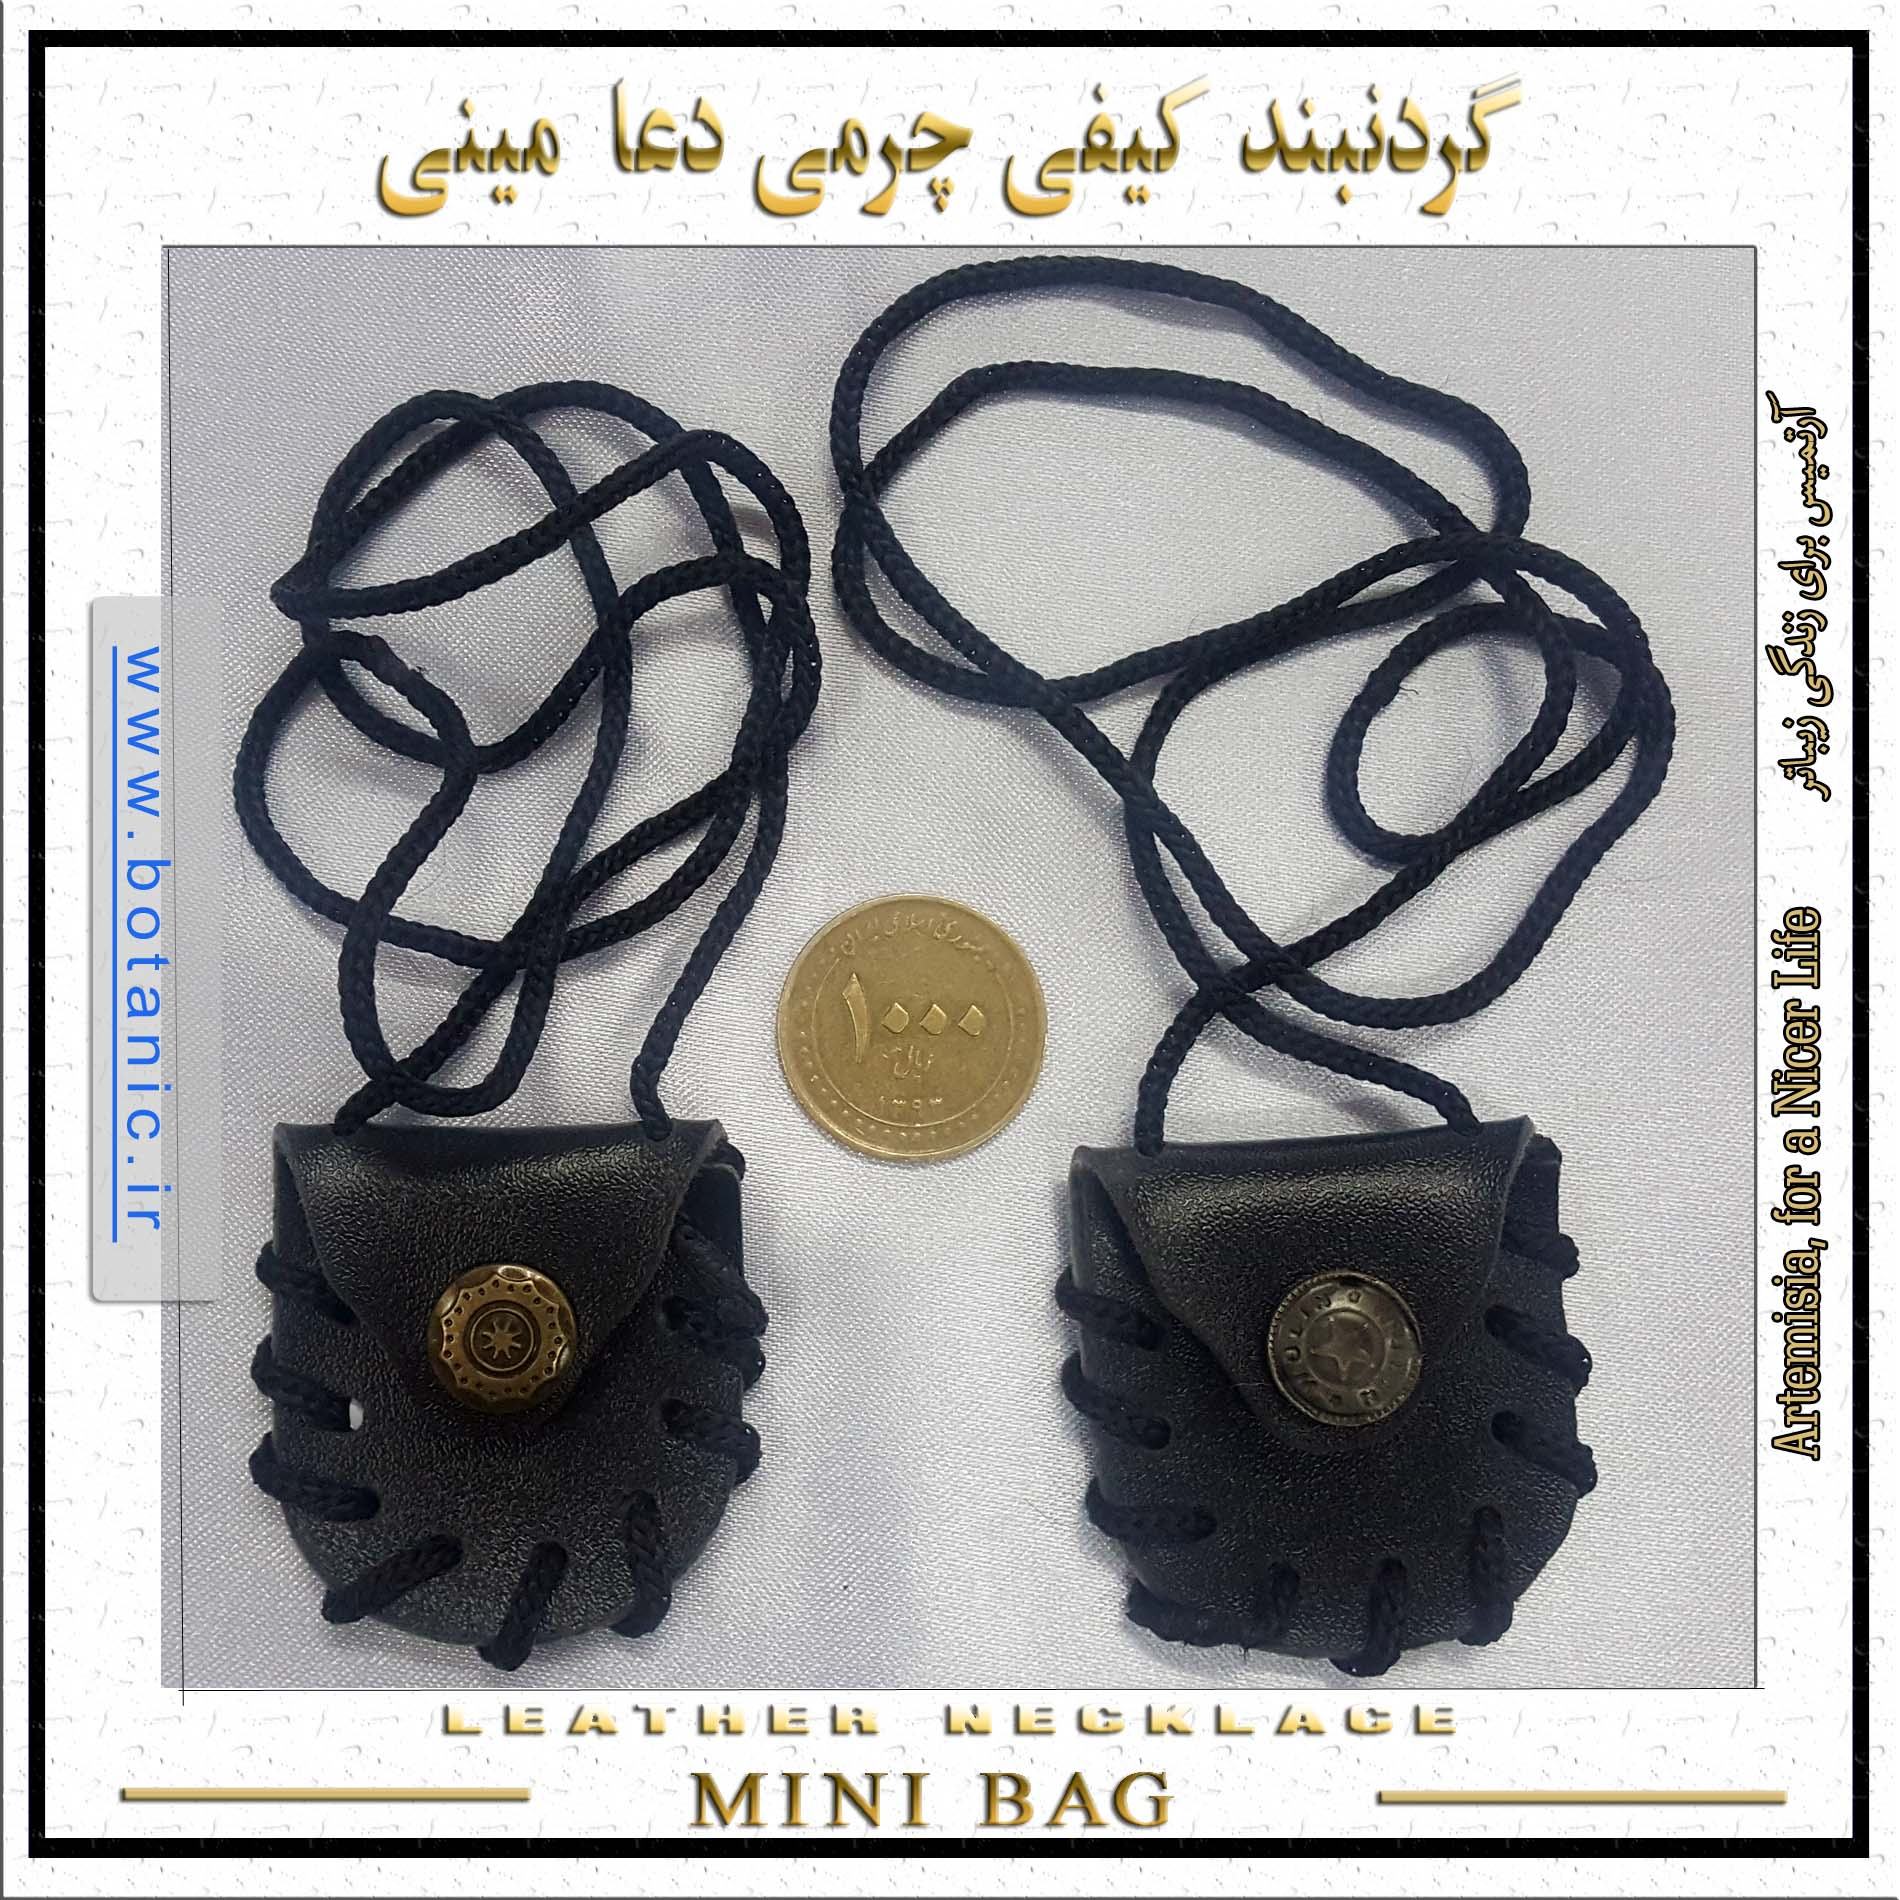 Mini Bag Leather Necklace